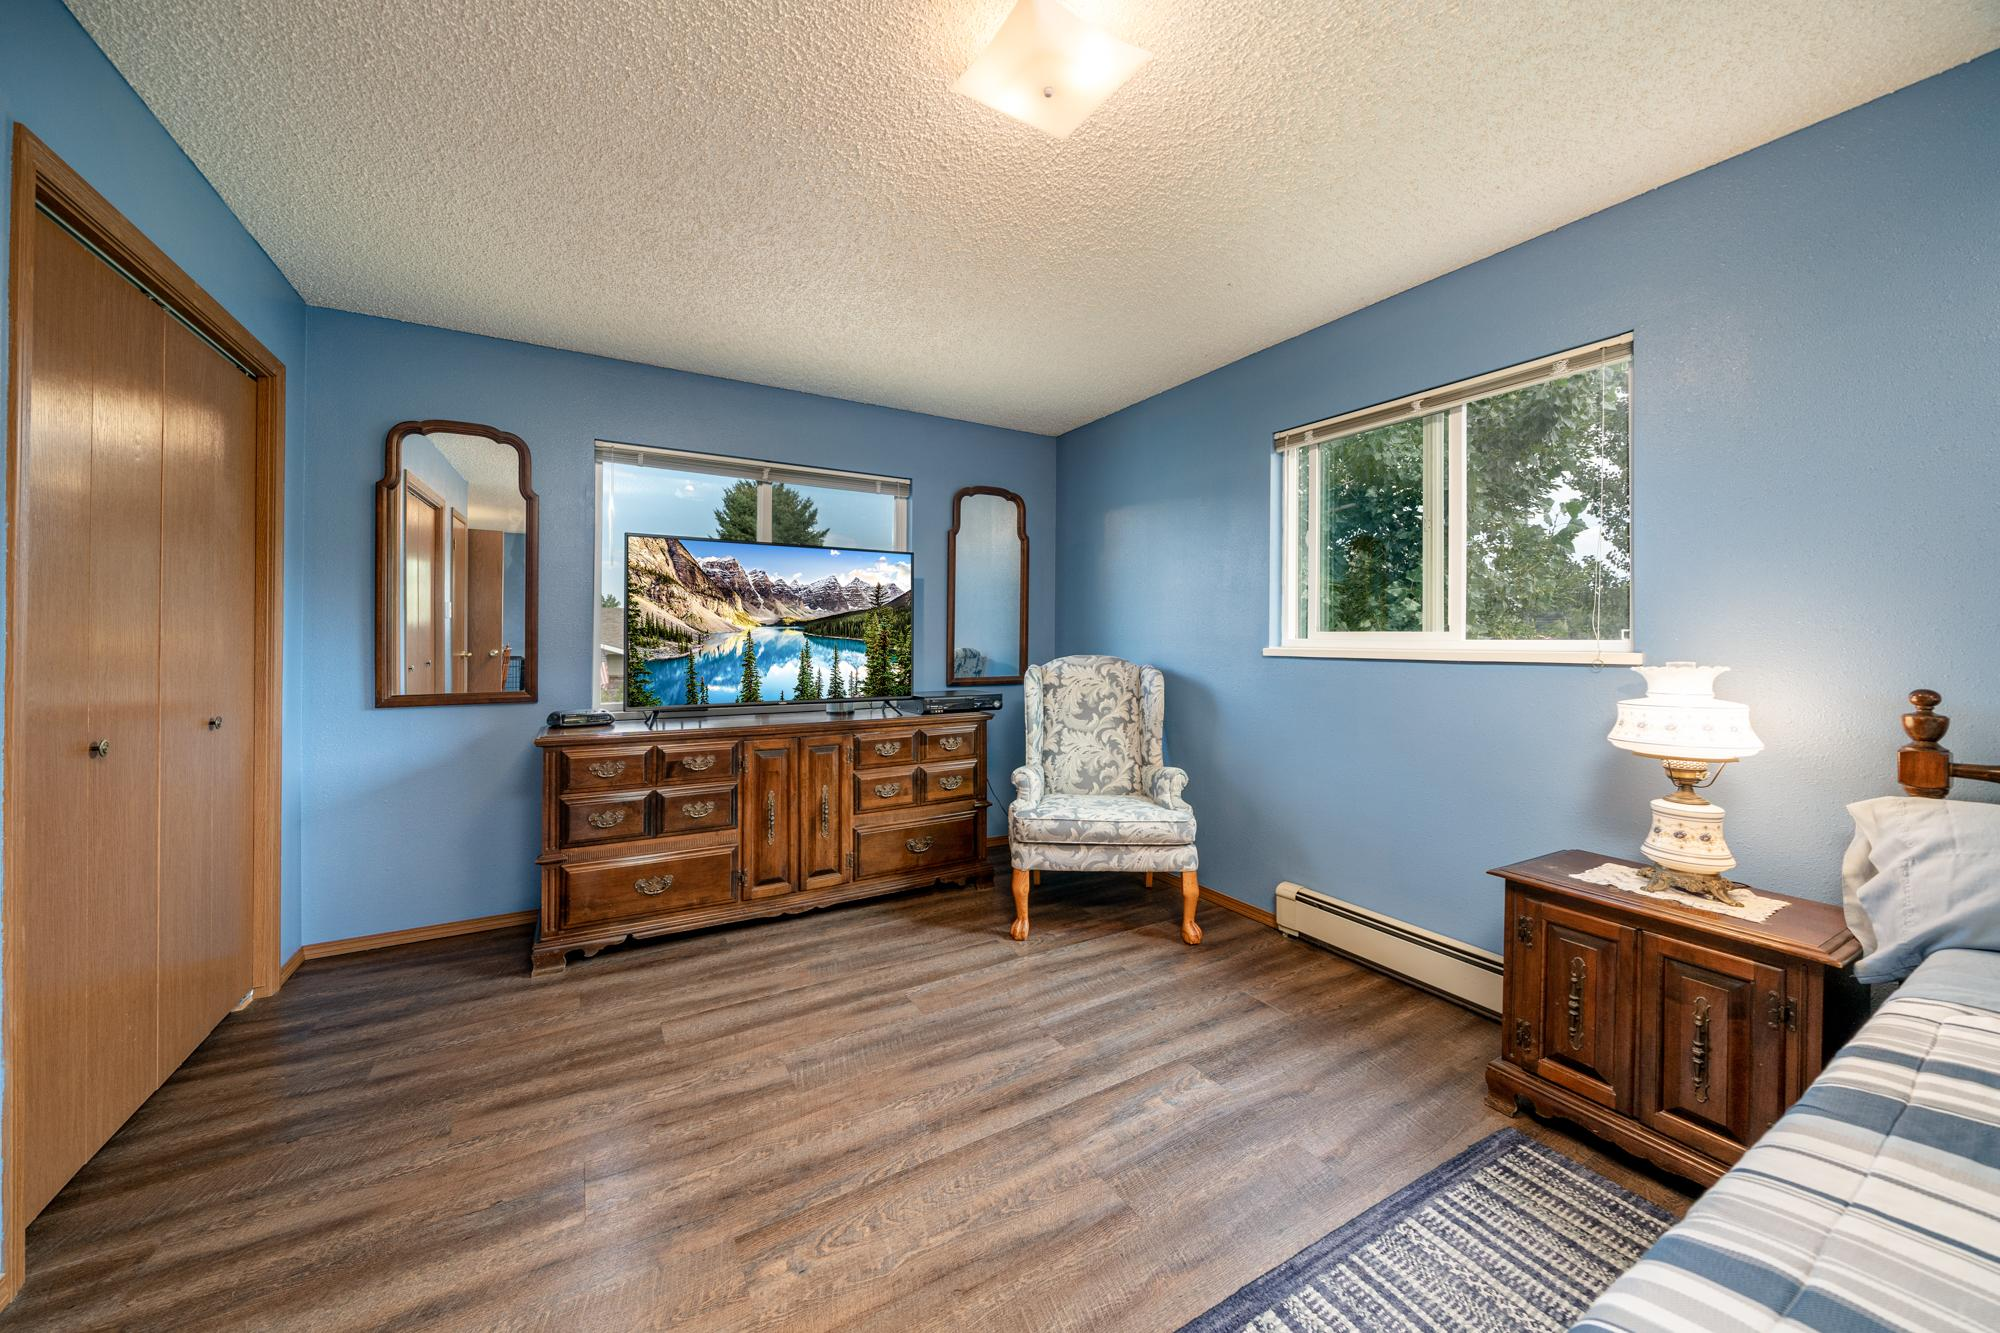 Main Bedroom with Window - 1311 Manchester Dr Montrose, CO 81401 - Atha Team Realty Agents